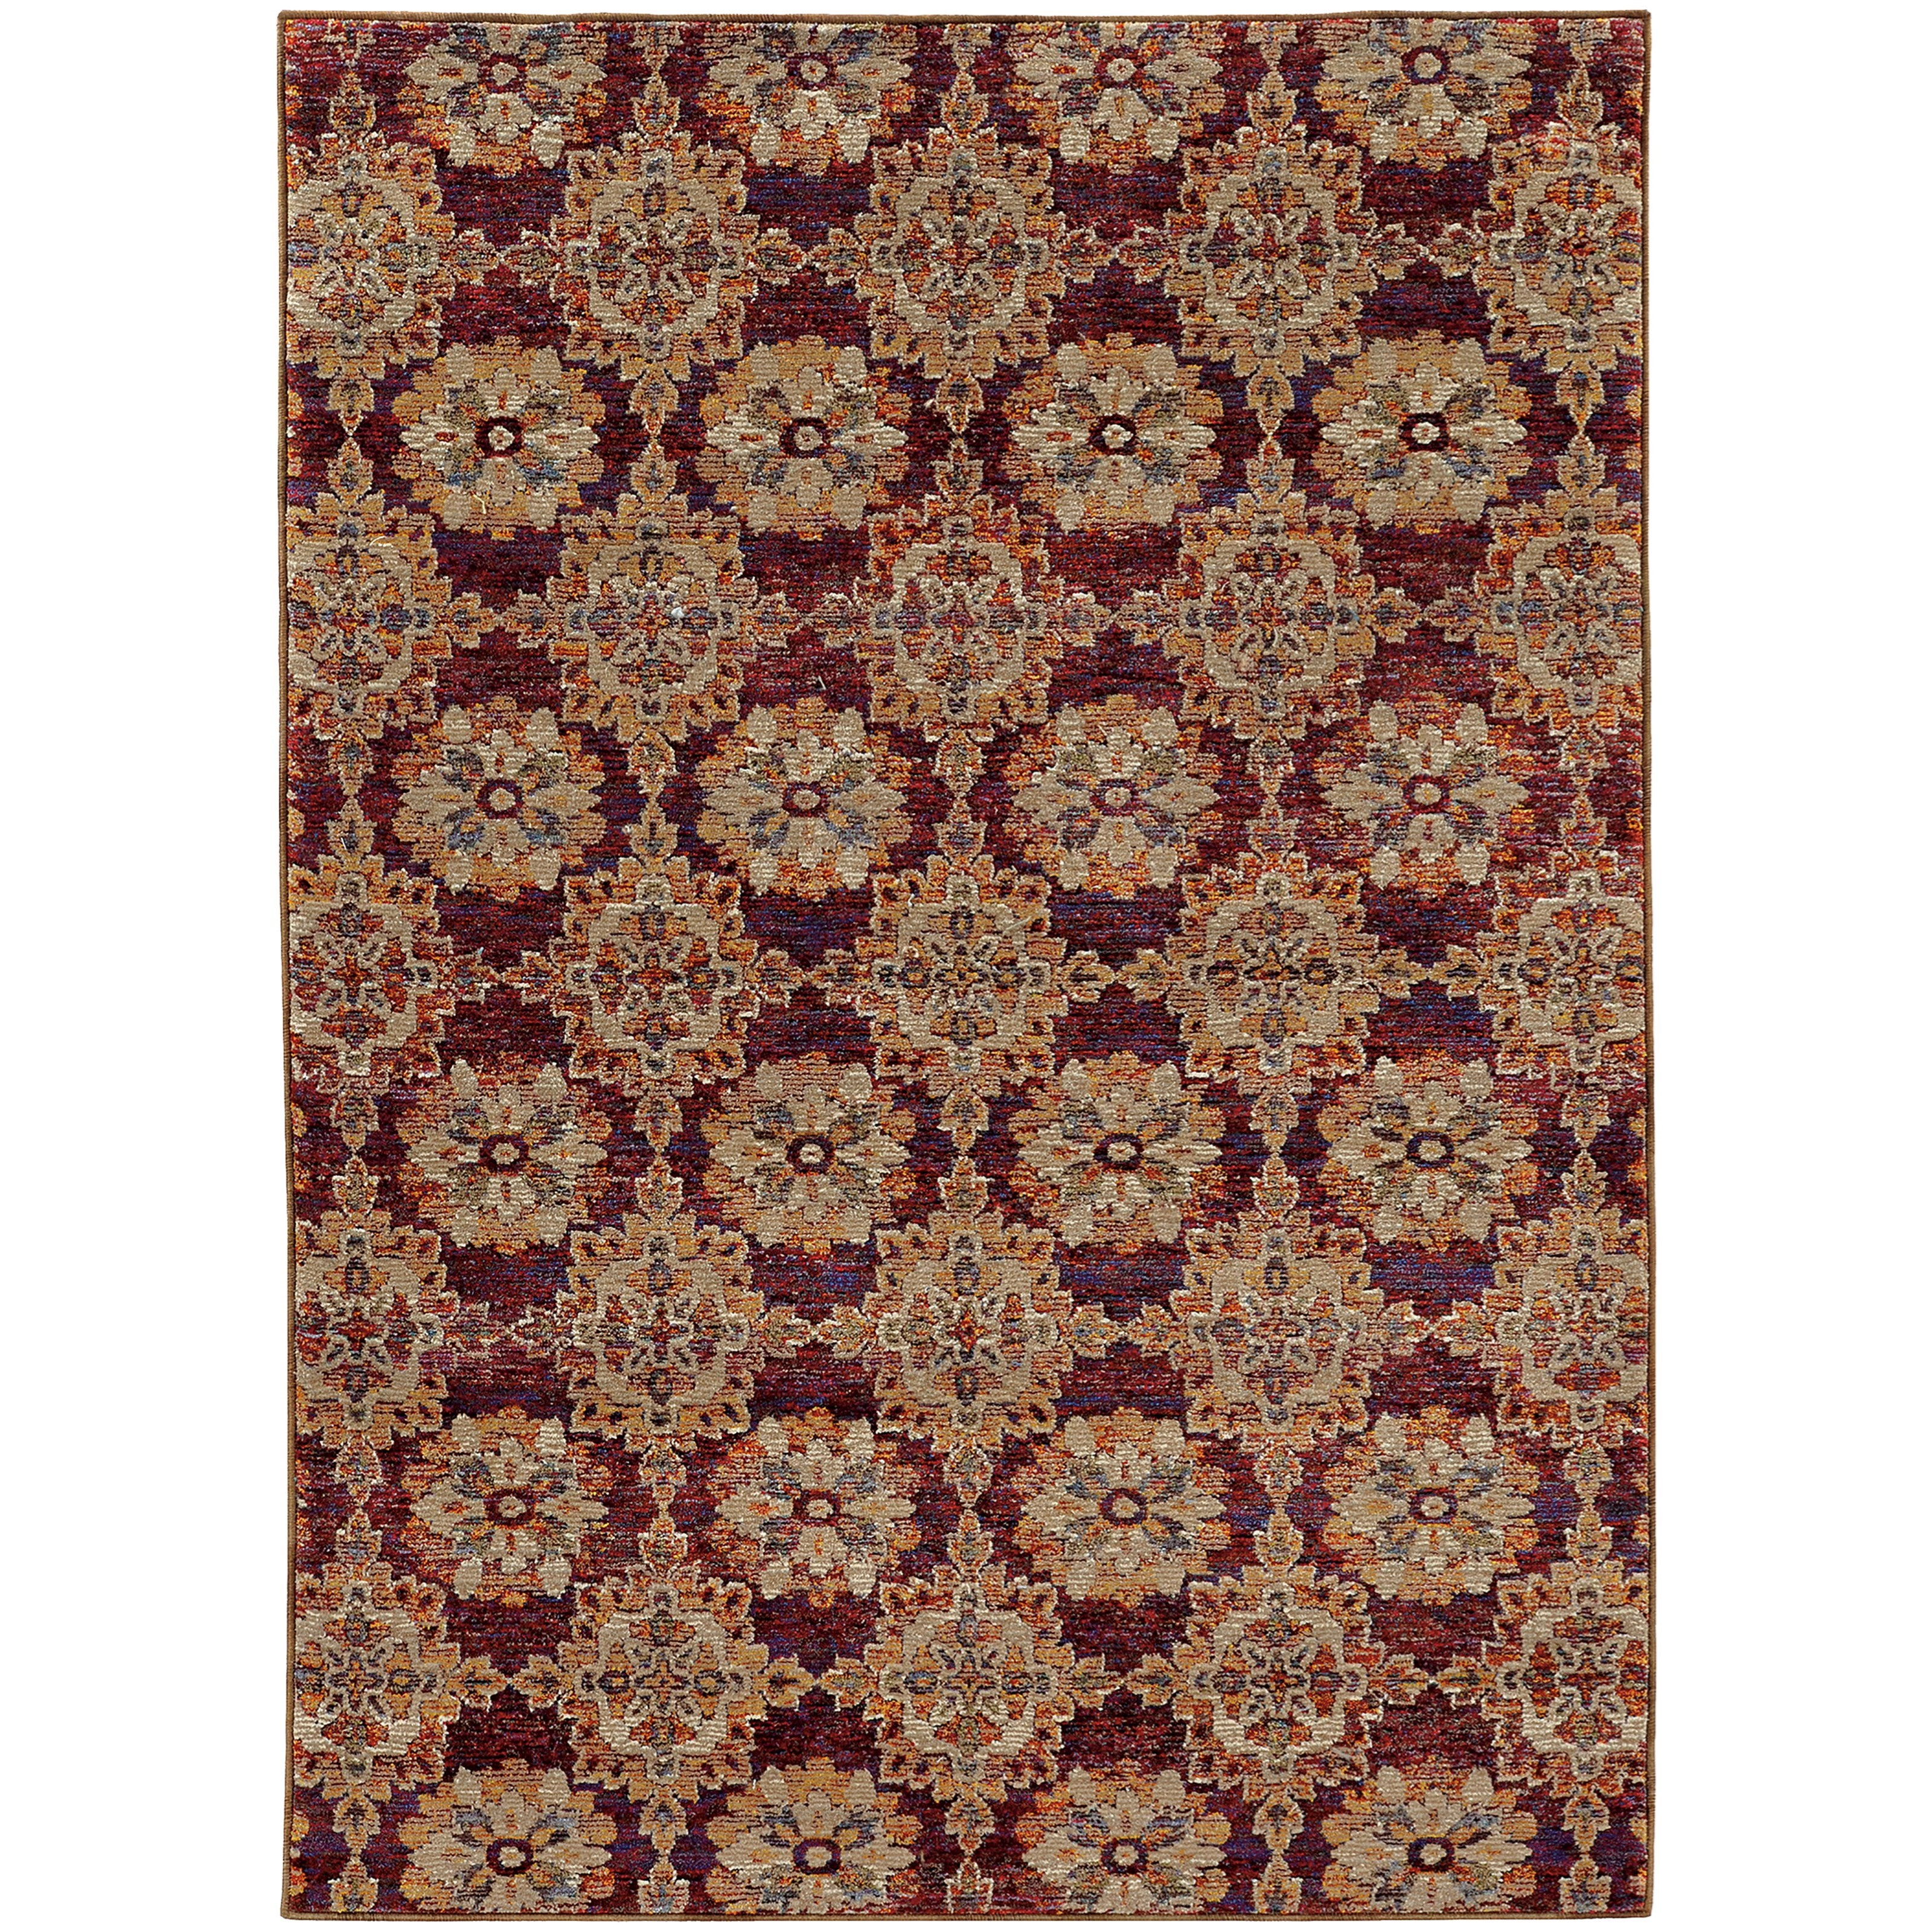 """Andorra 3' 3"""" X  5' 2"""" Casual Red/ Gold Rectangle Ru by Oriental Weavers at Steger's Furniture"""